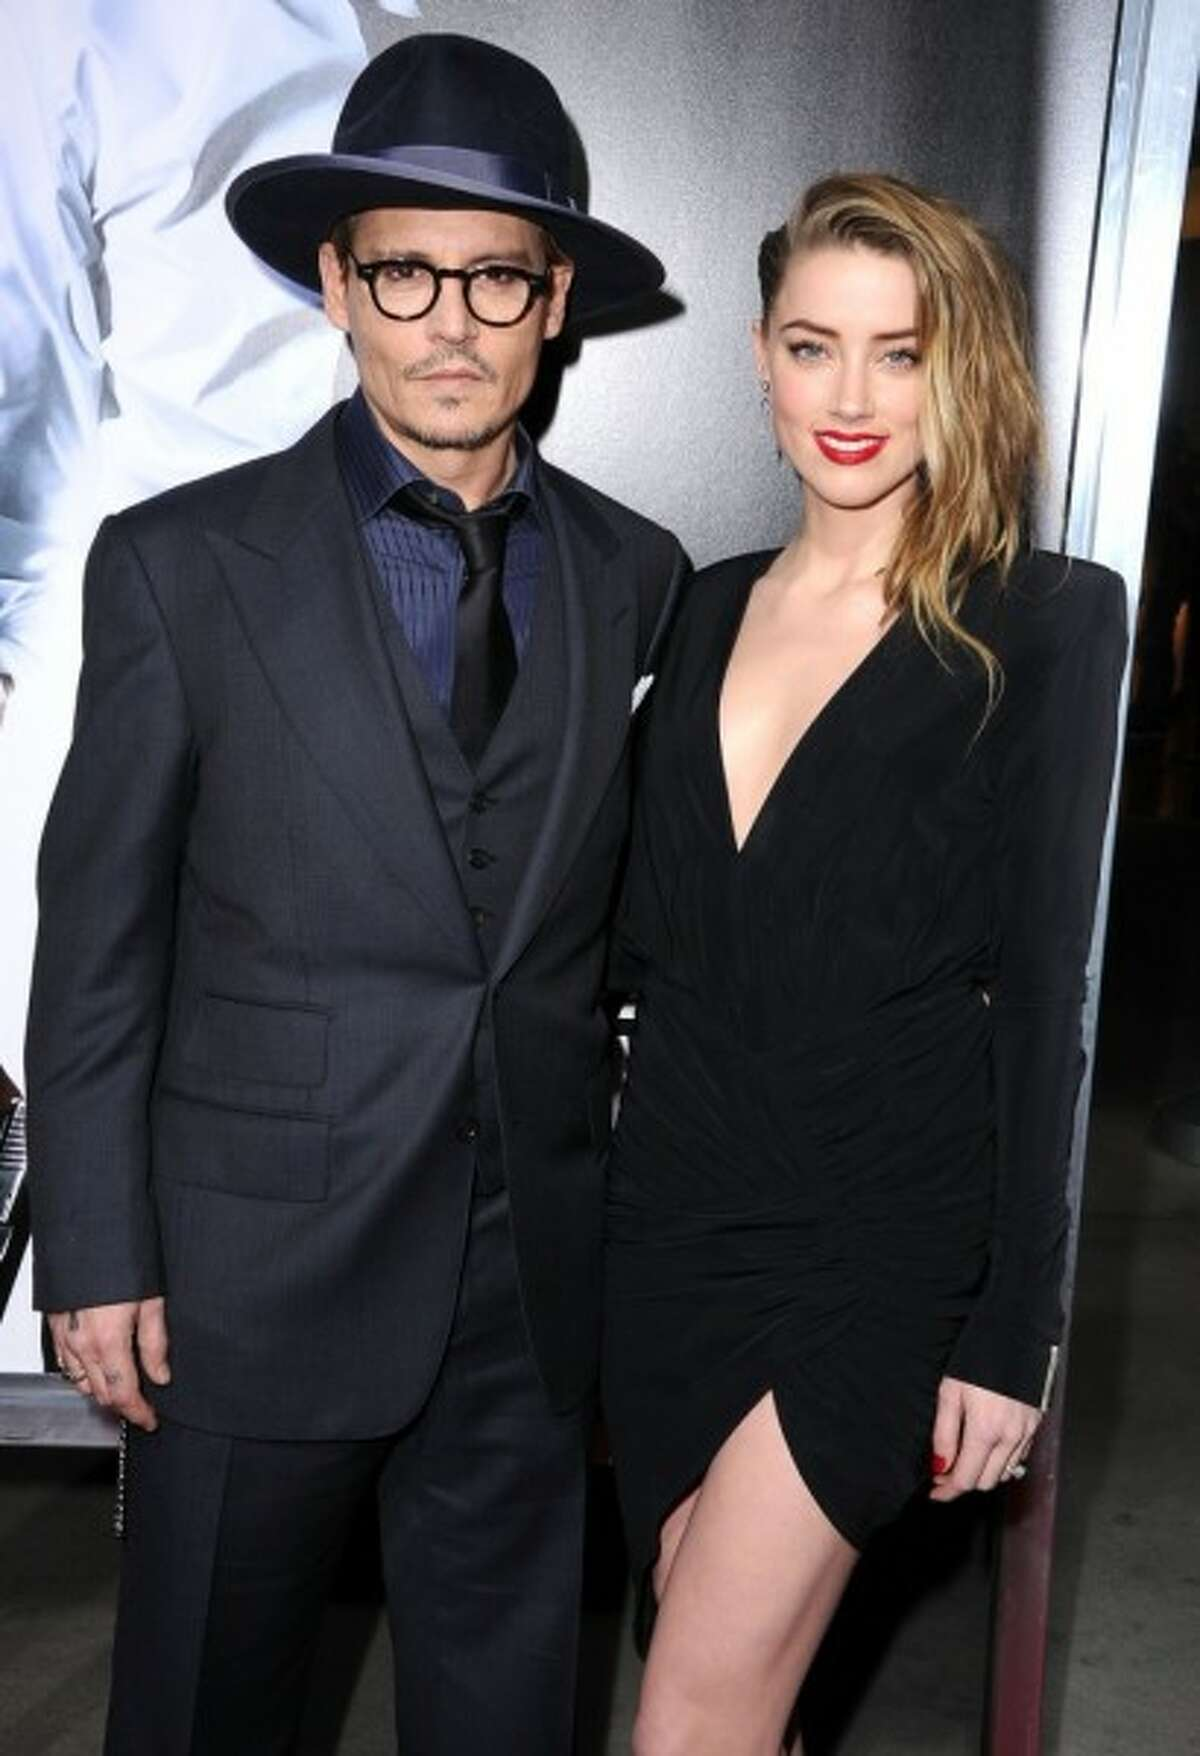 Johnny Depp married Amber Heard on Tuesday, reports say. (Handout photo) See photos of some longtime celeb couples.